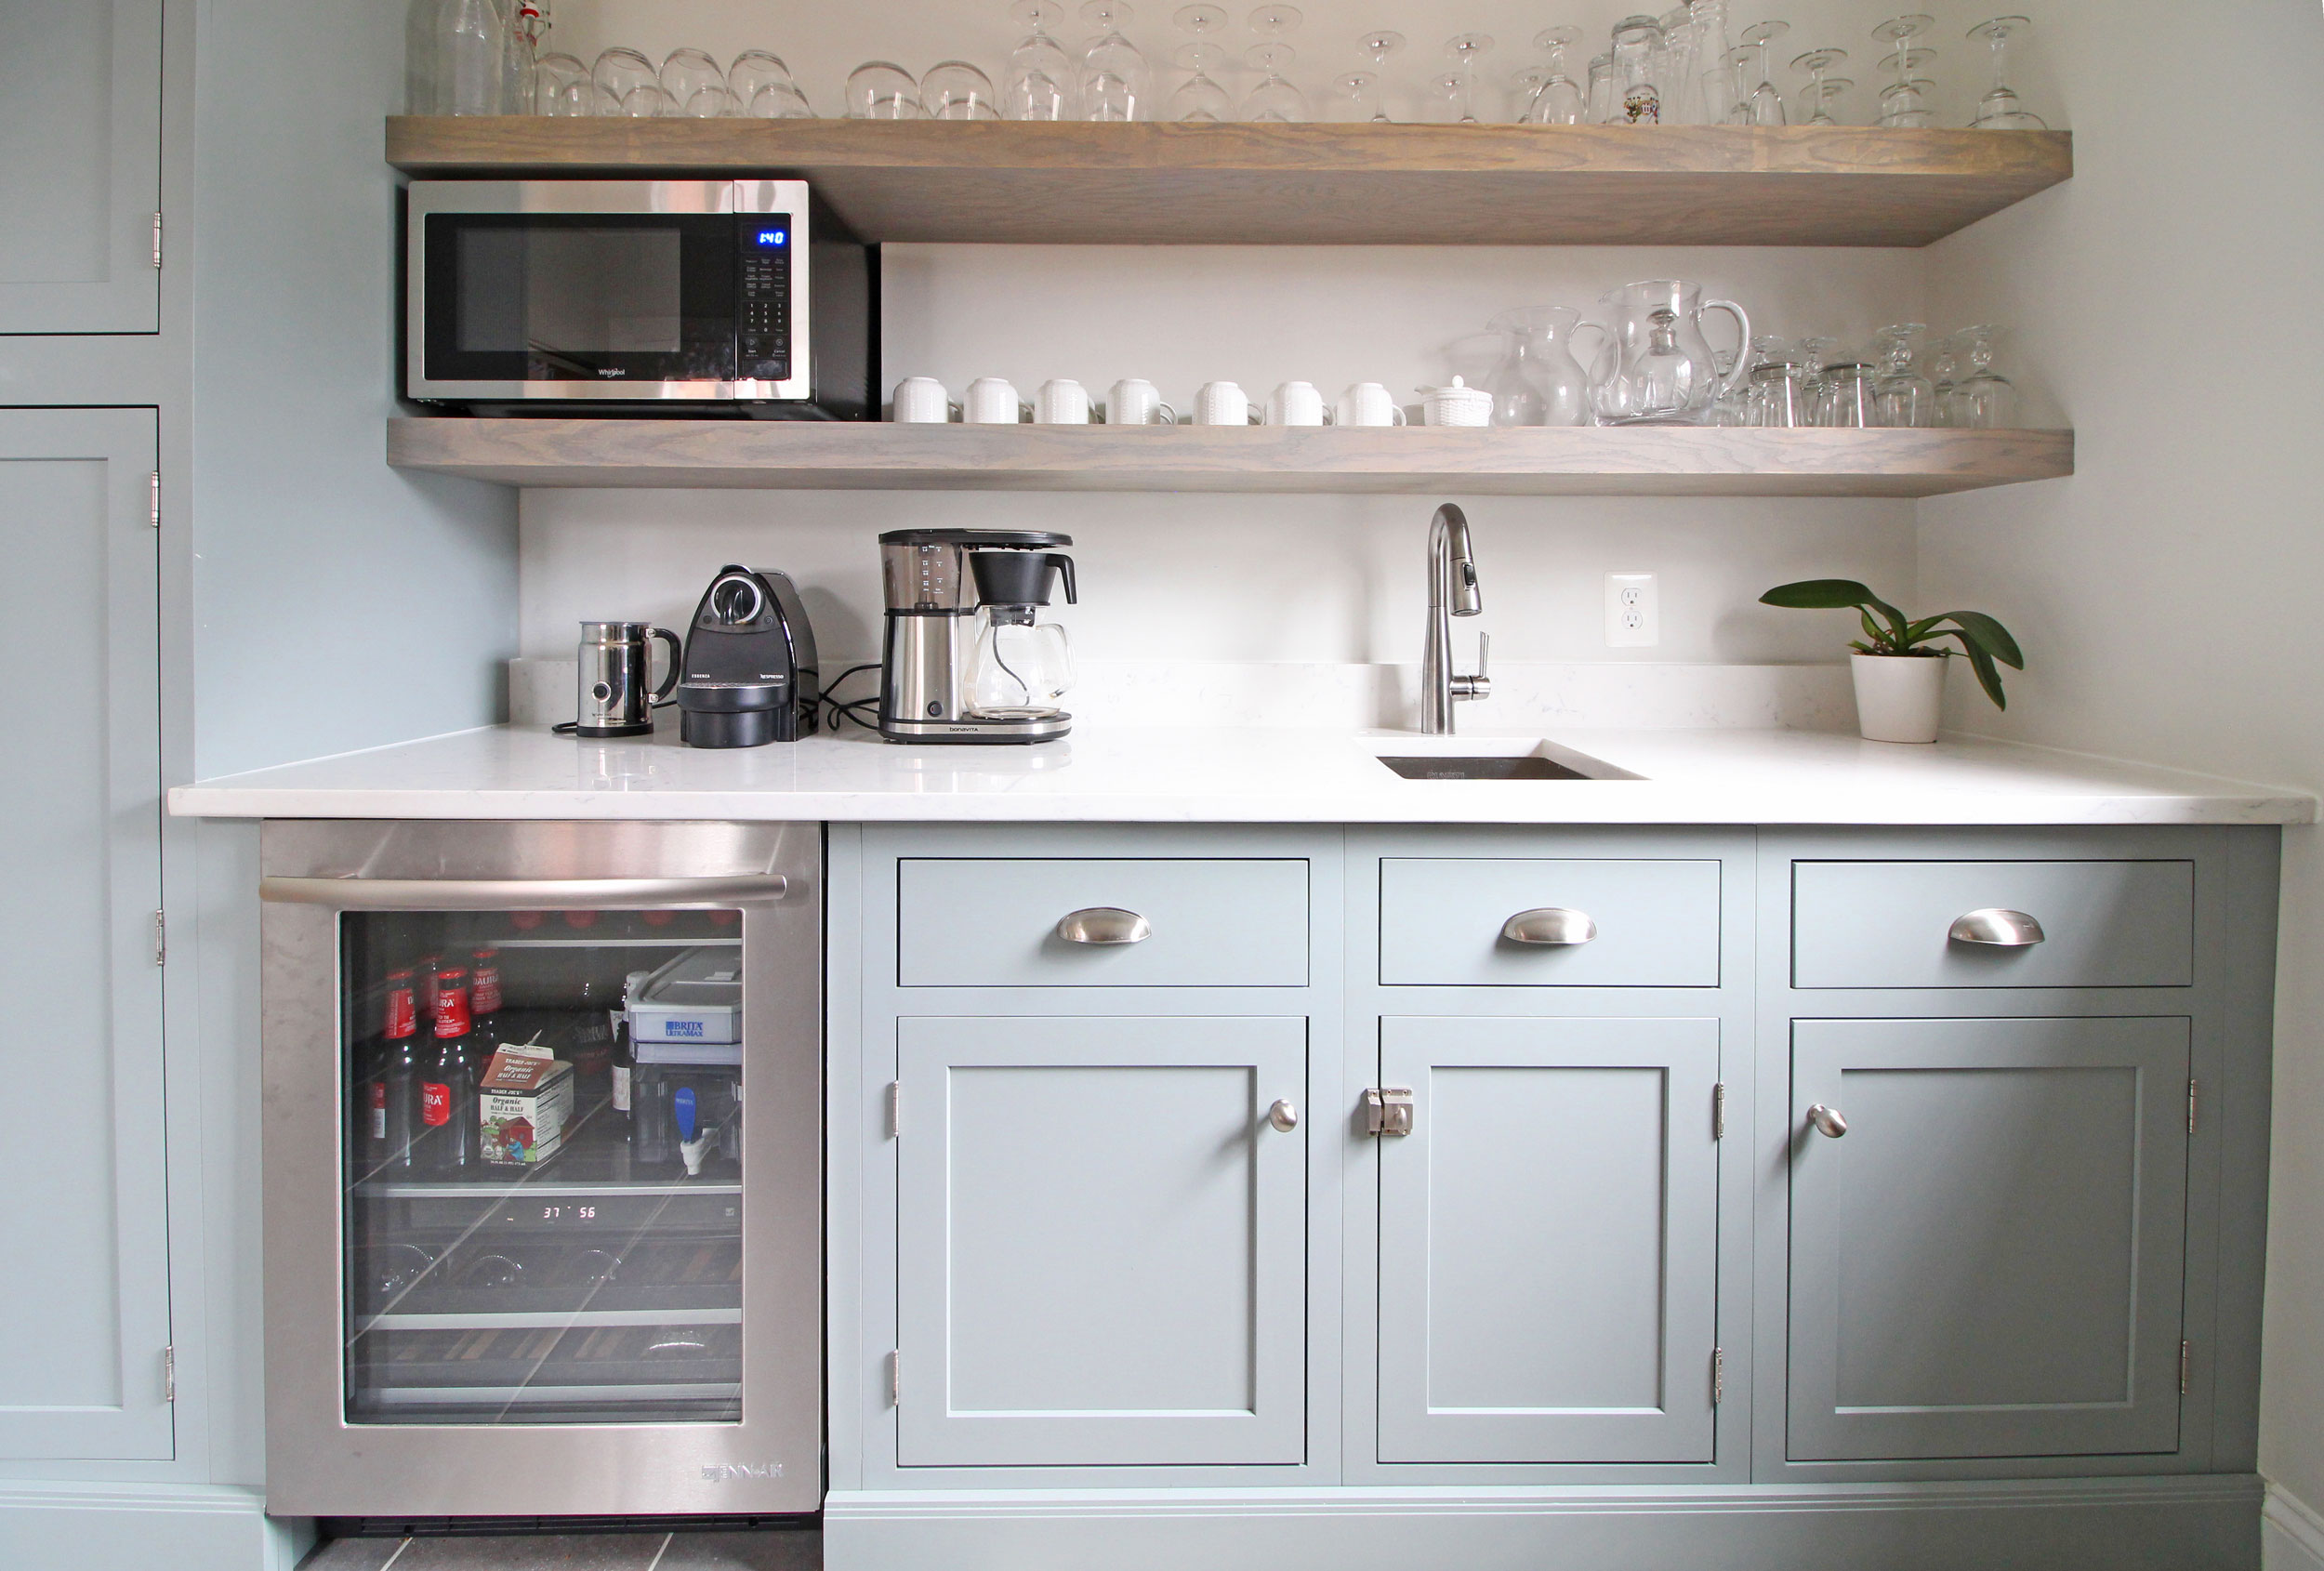 Butlers-Pantry-Blue-Cabinets-Kitchen-Open-Shelving-4.jpg